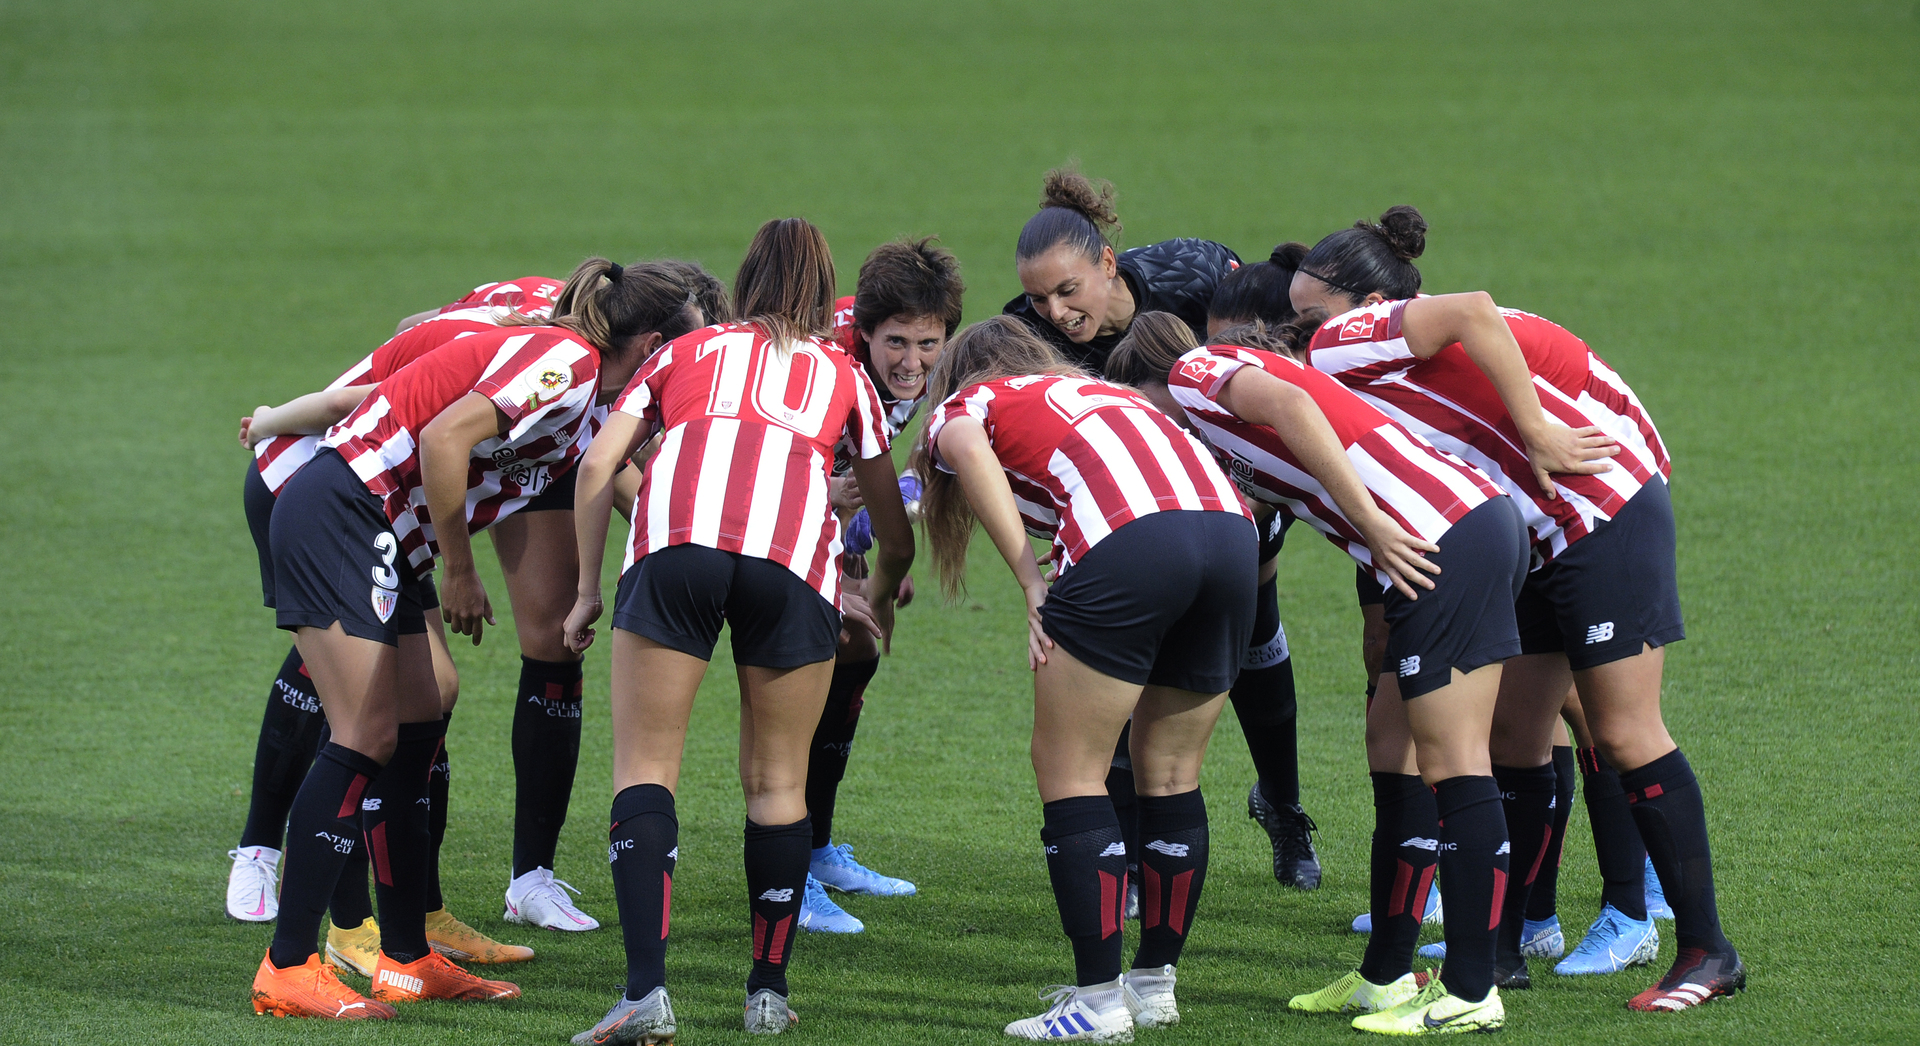 A two-week break for Athletic Club Women